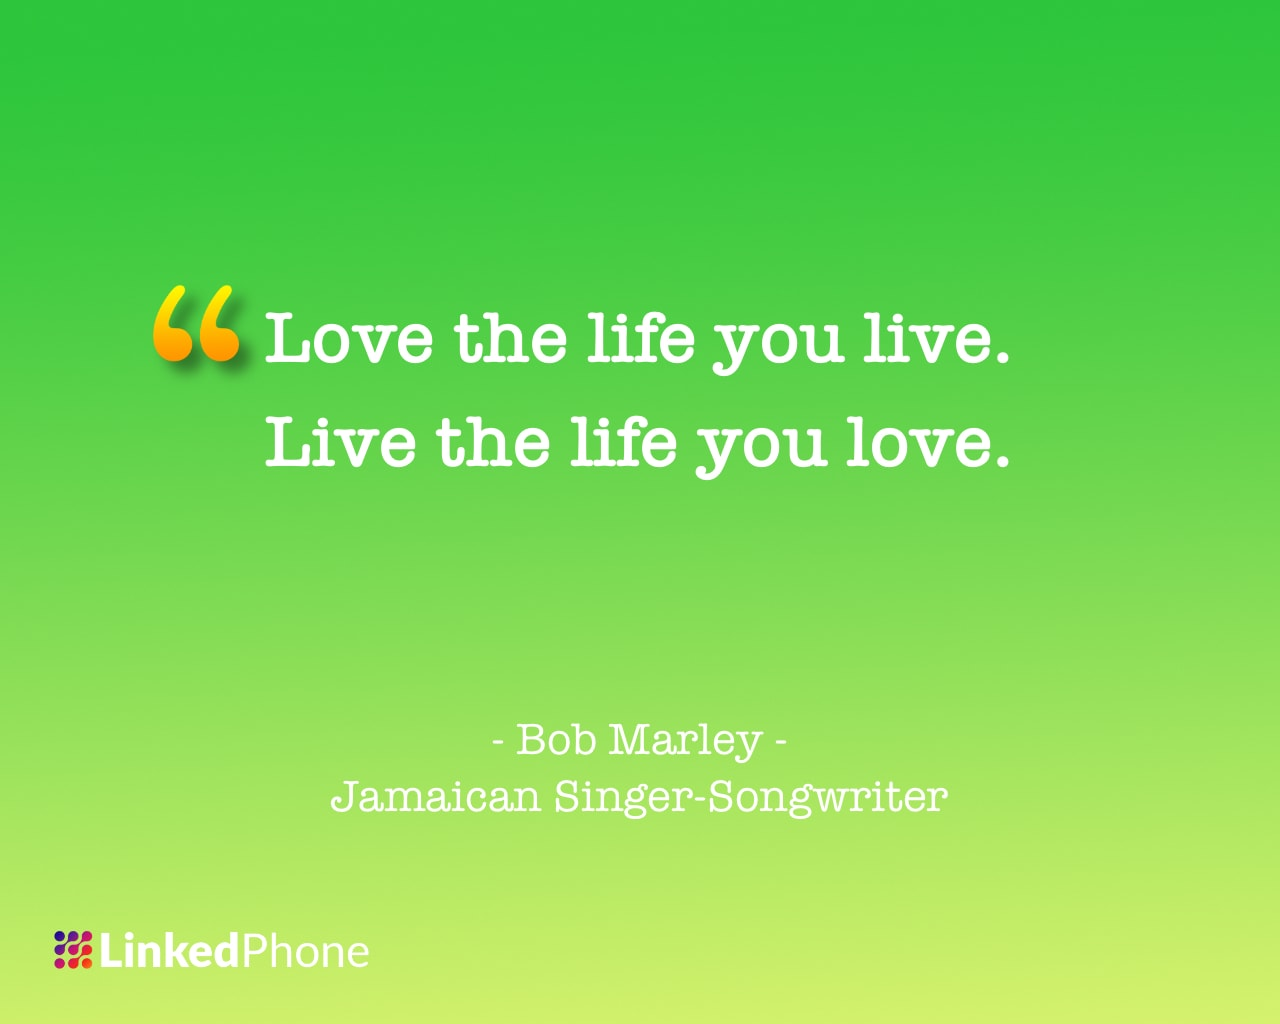 Bob Marley - Motivational Inspirational Quotes and Sayings